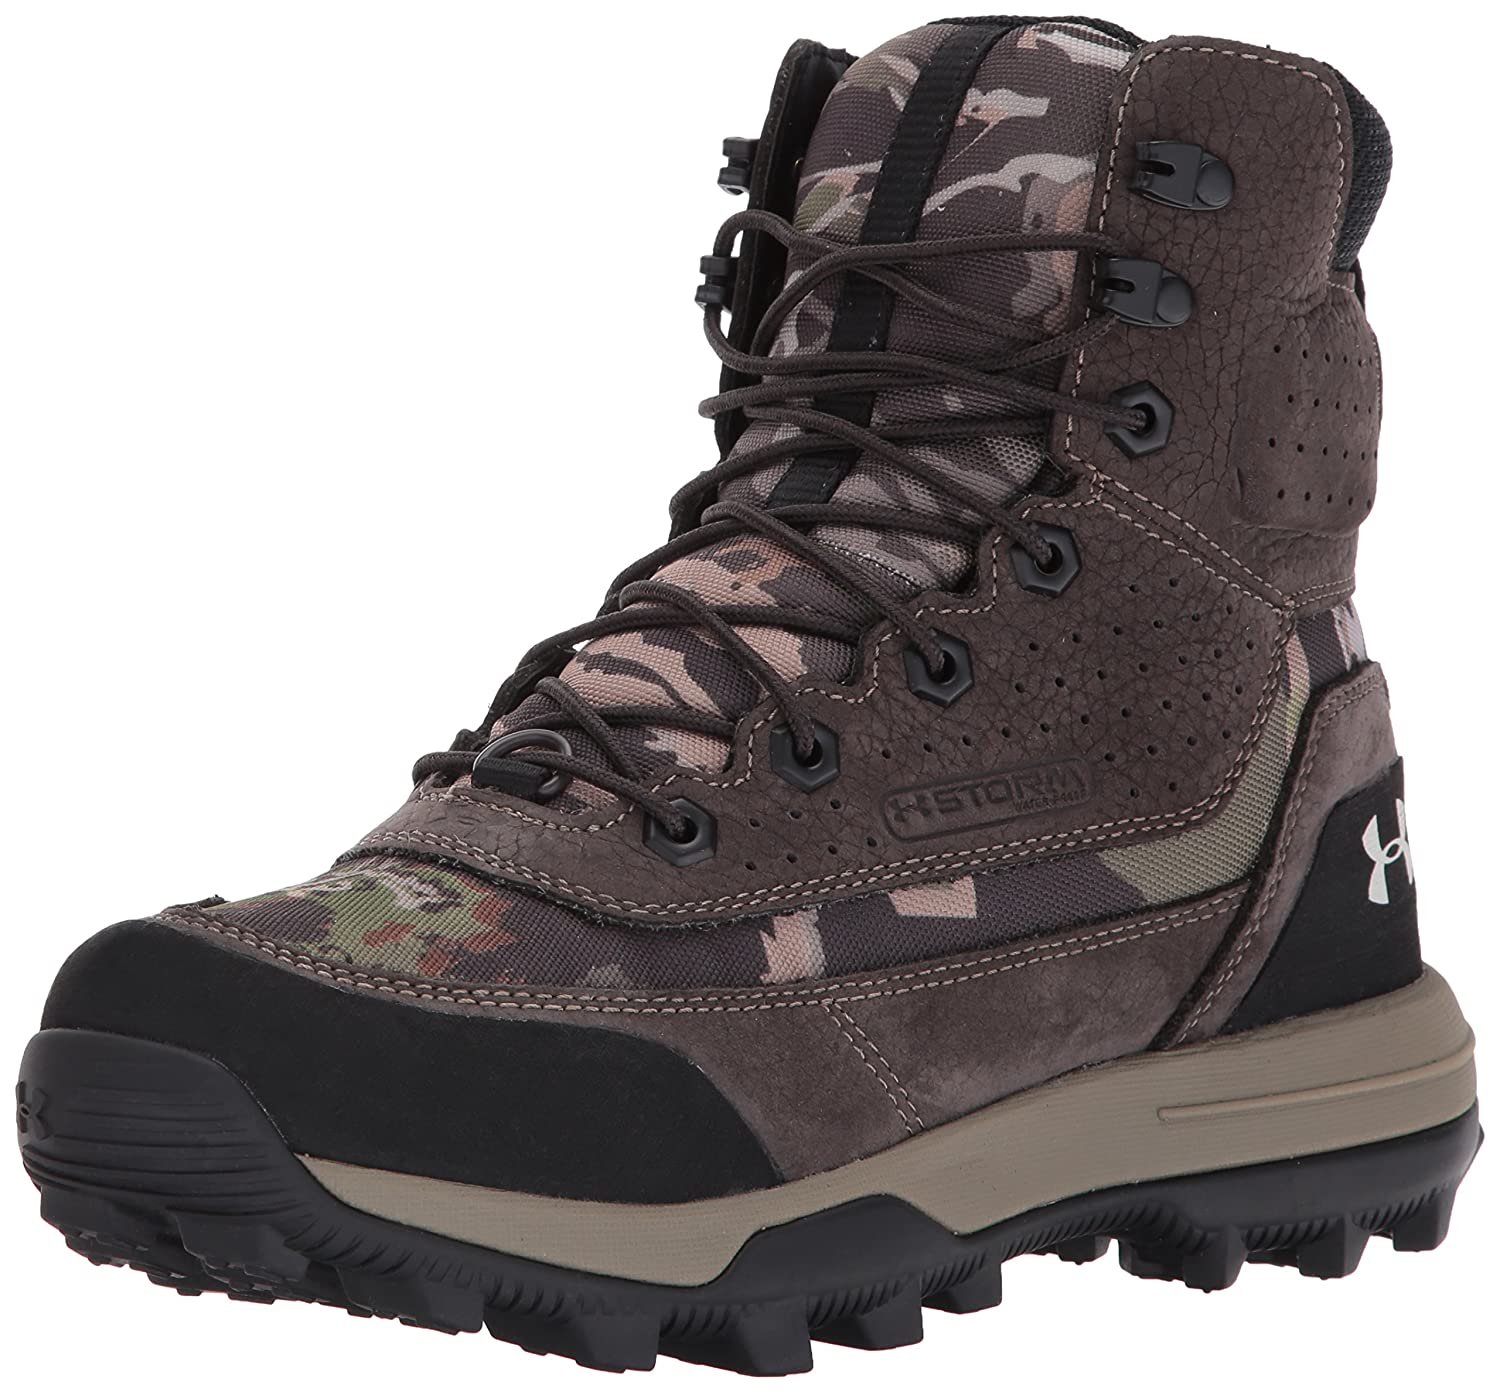 Under Armour Women's SF Bozeman 2.0 Hiking Boot, -